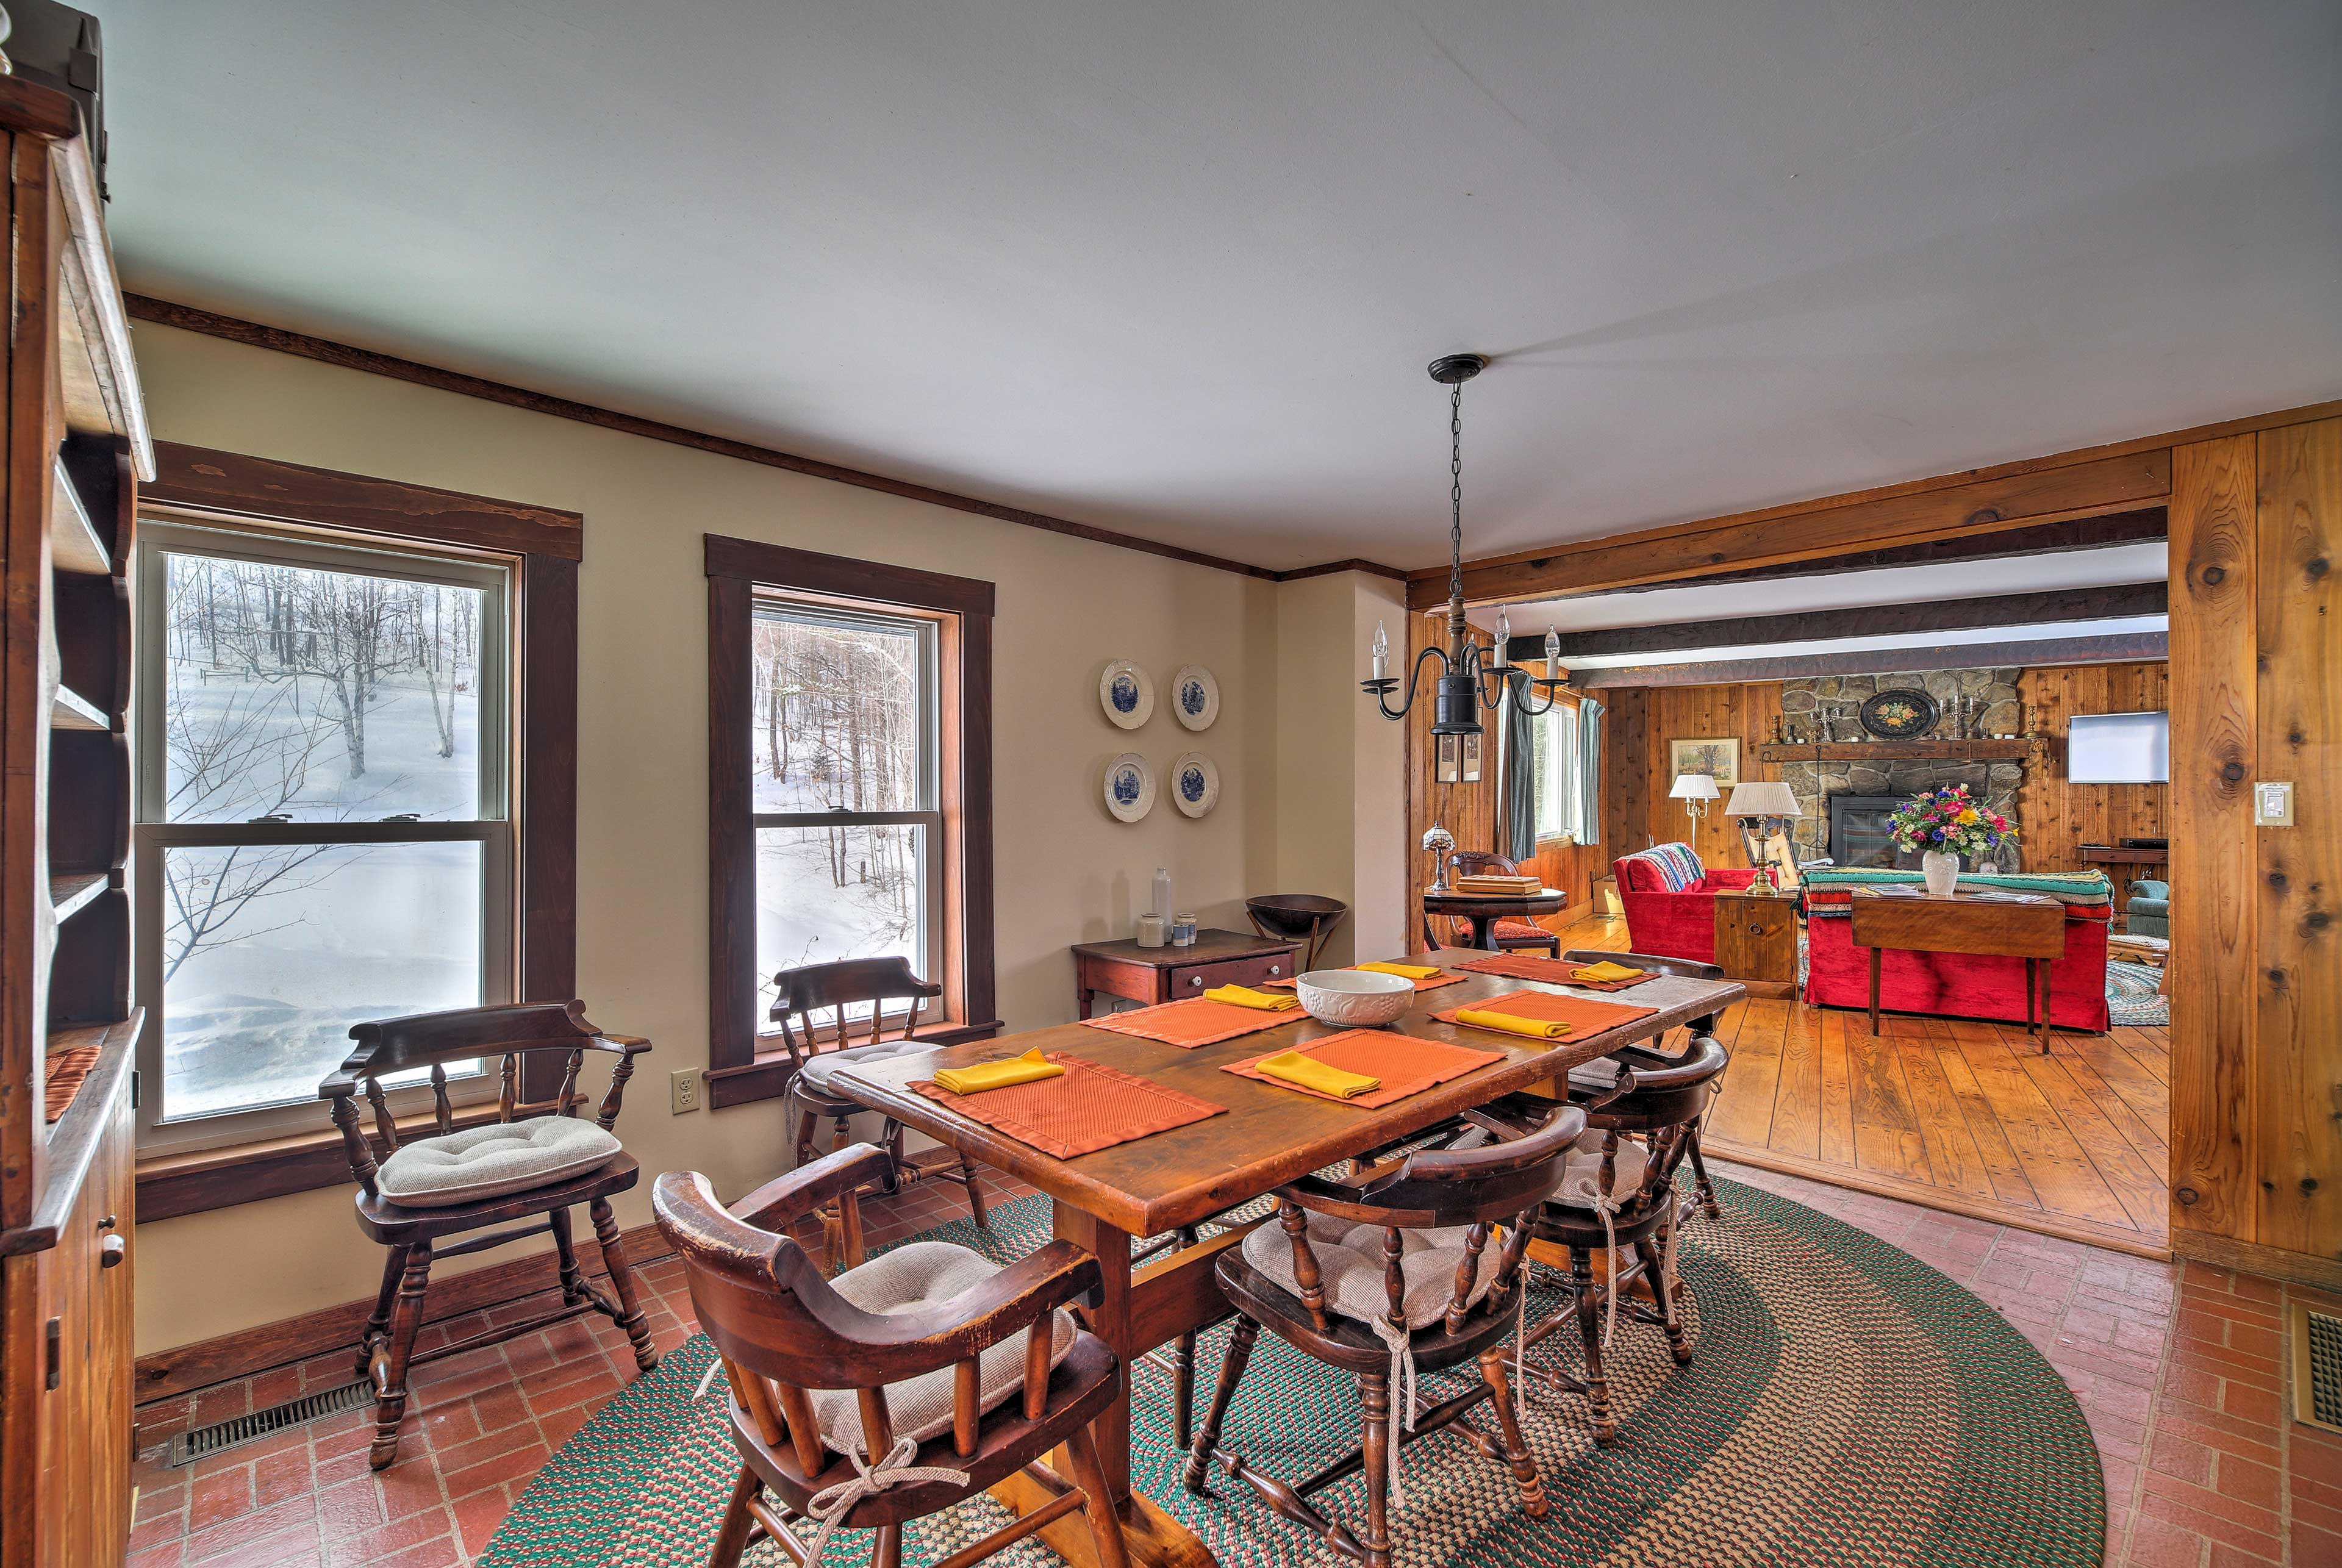 As you dine at this table for 6, admire the natural views out the large windows.